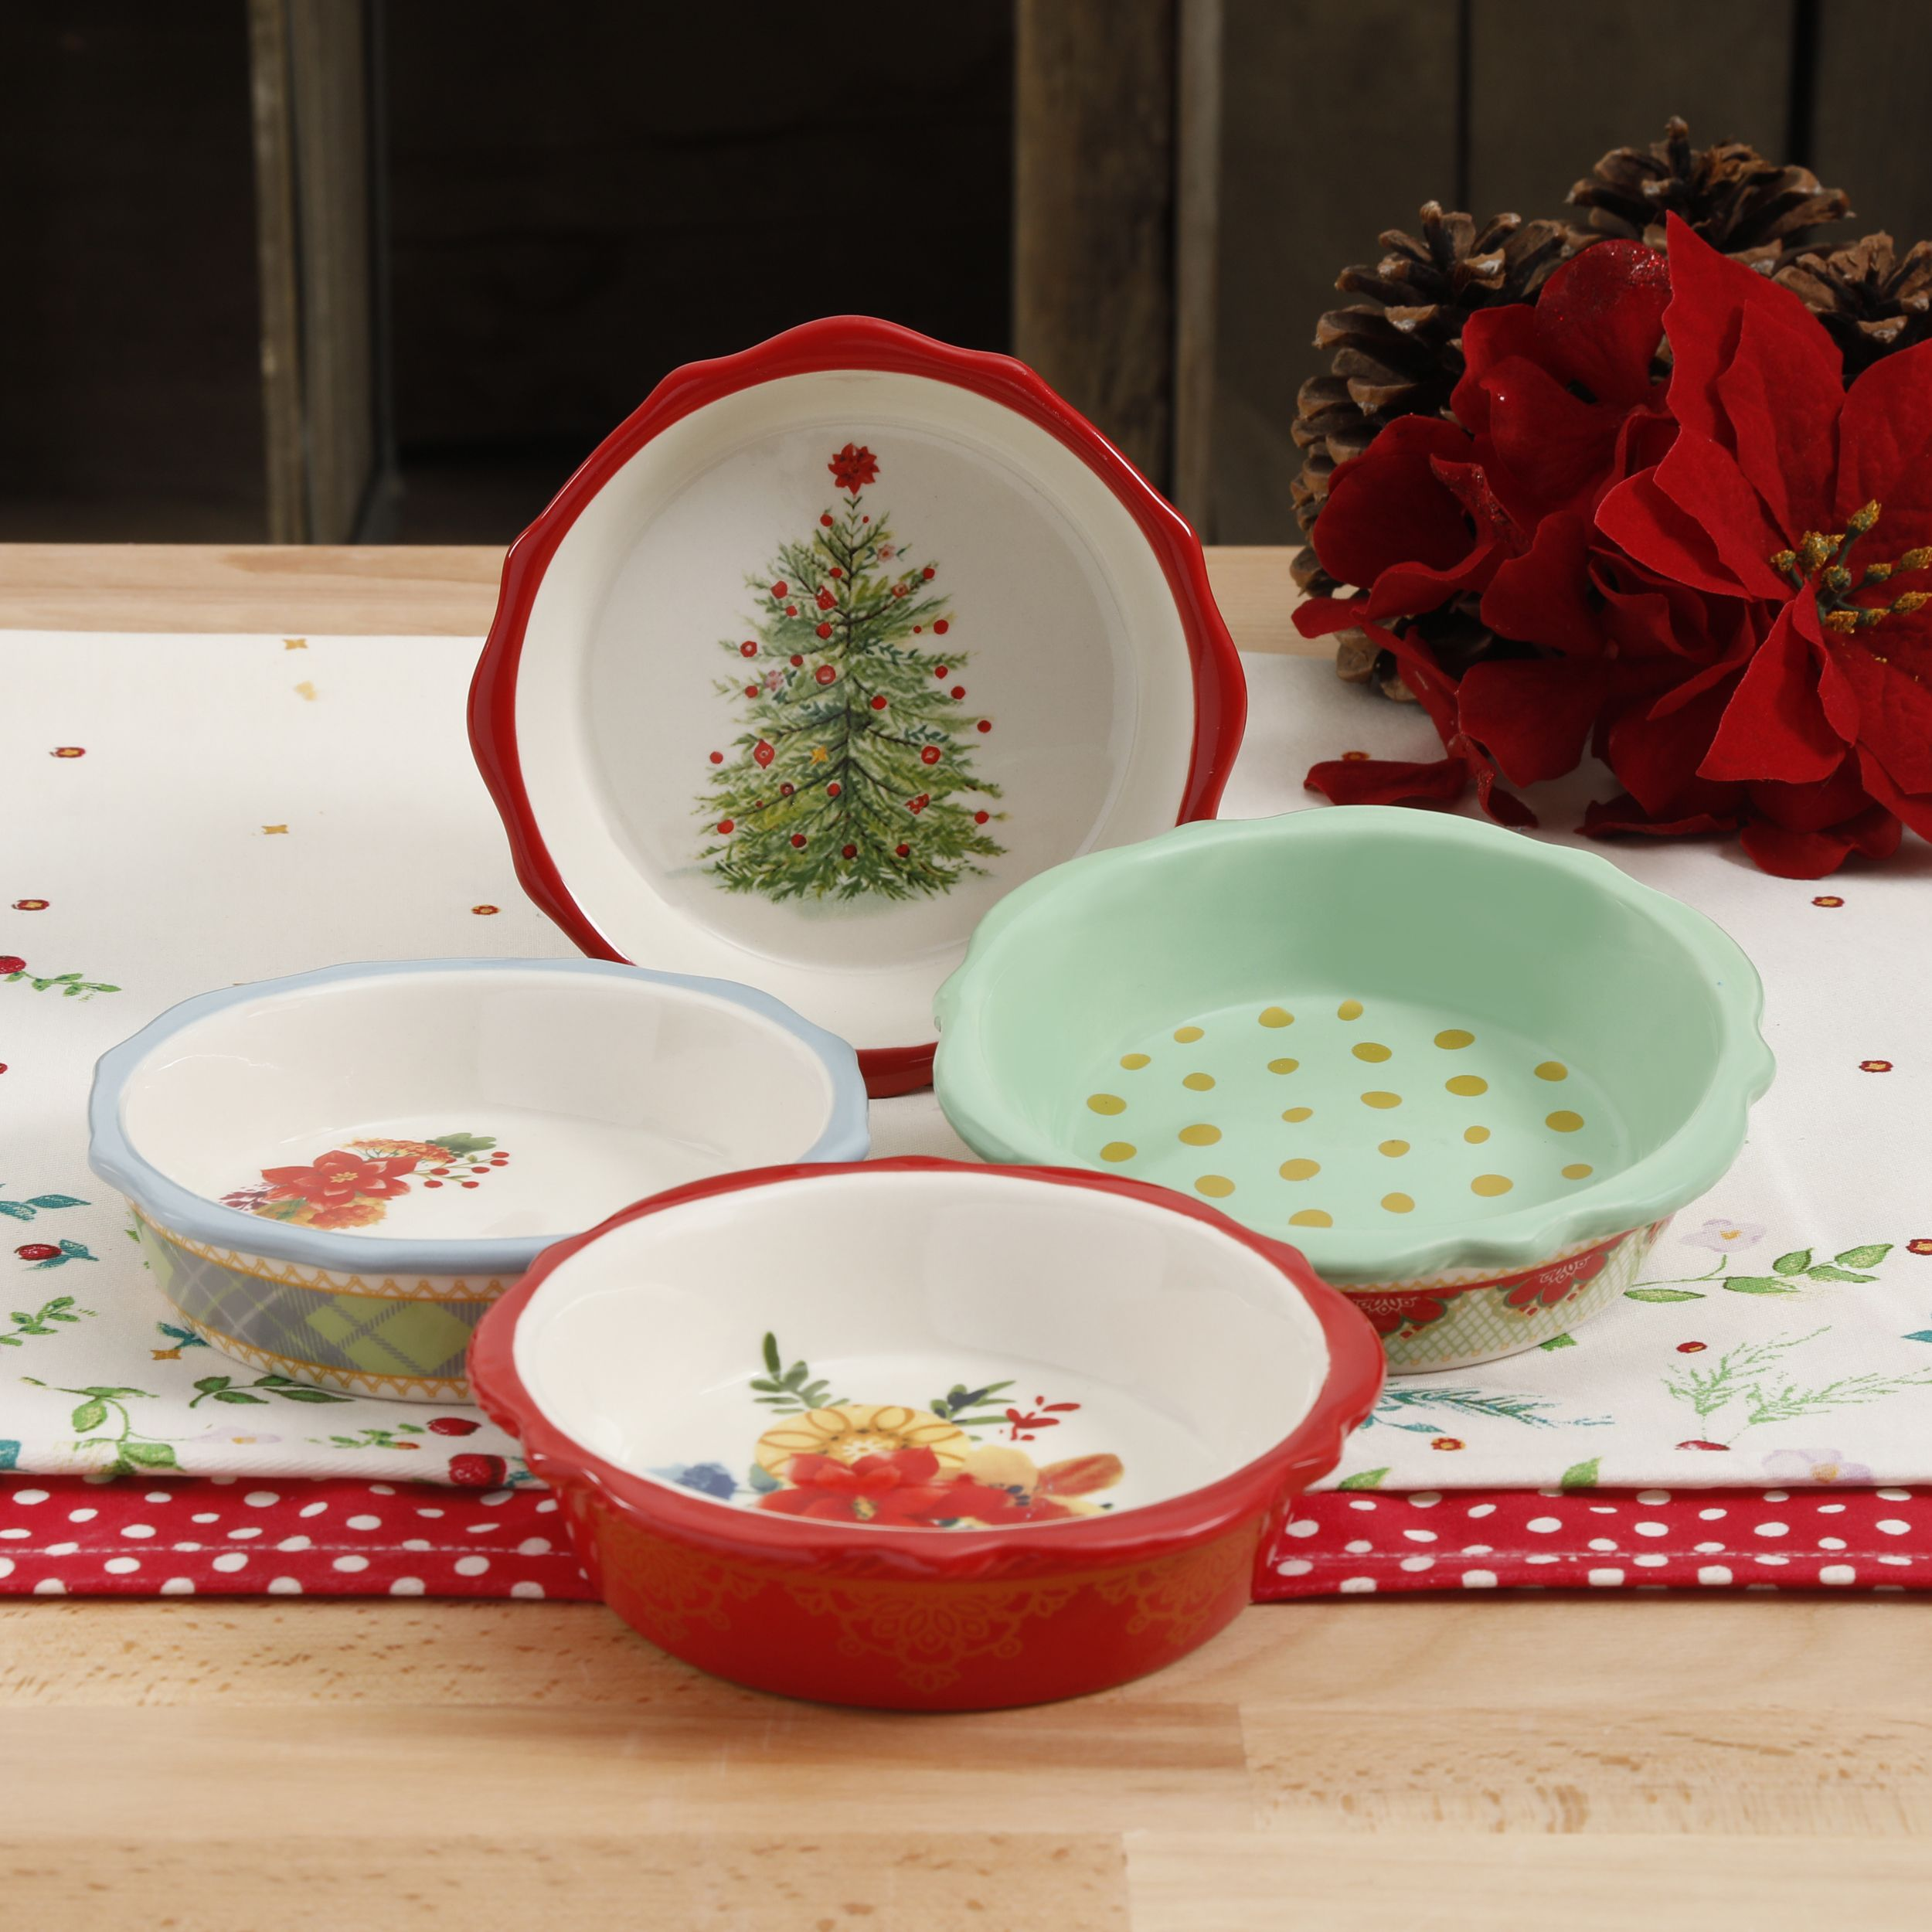 Mini Christmas Pie Plates & Mini Christmas Pie Plates | Seasons | Pinterest | Pie plate